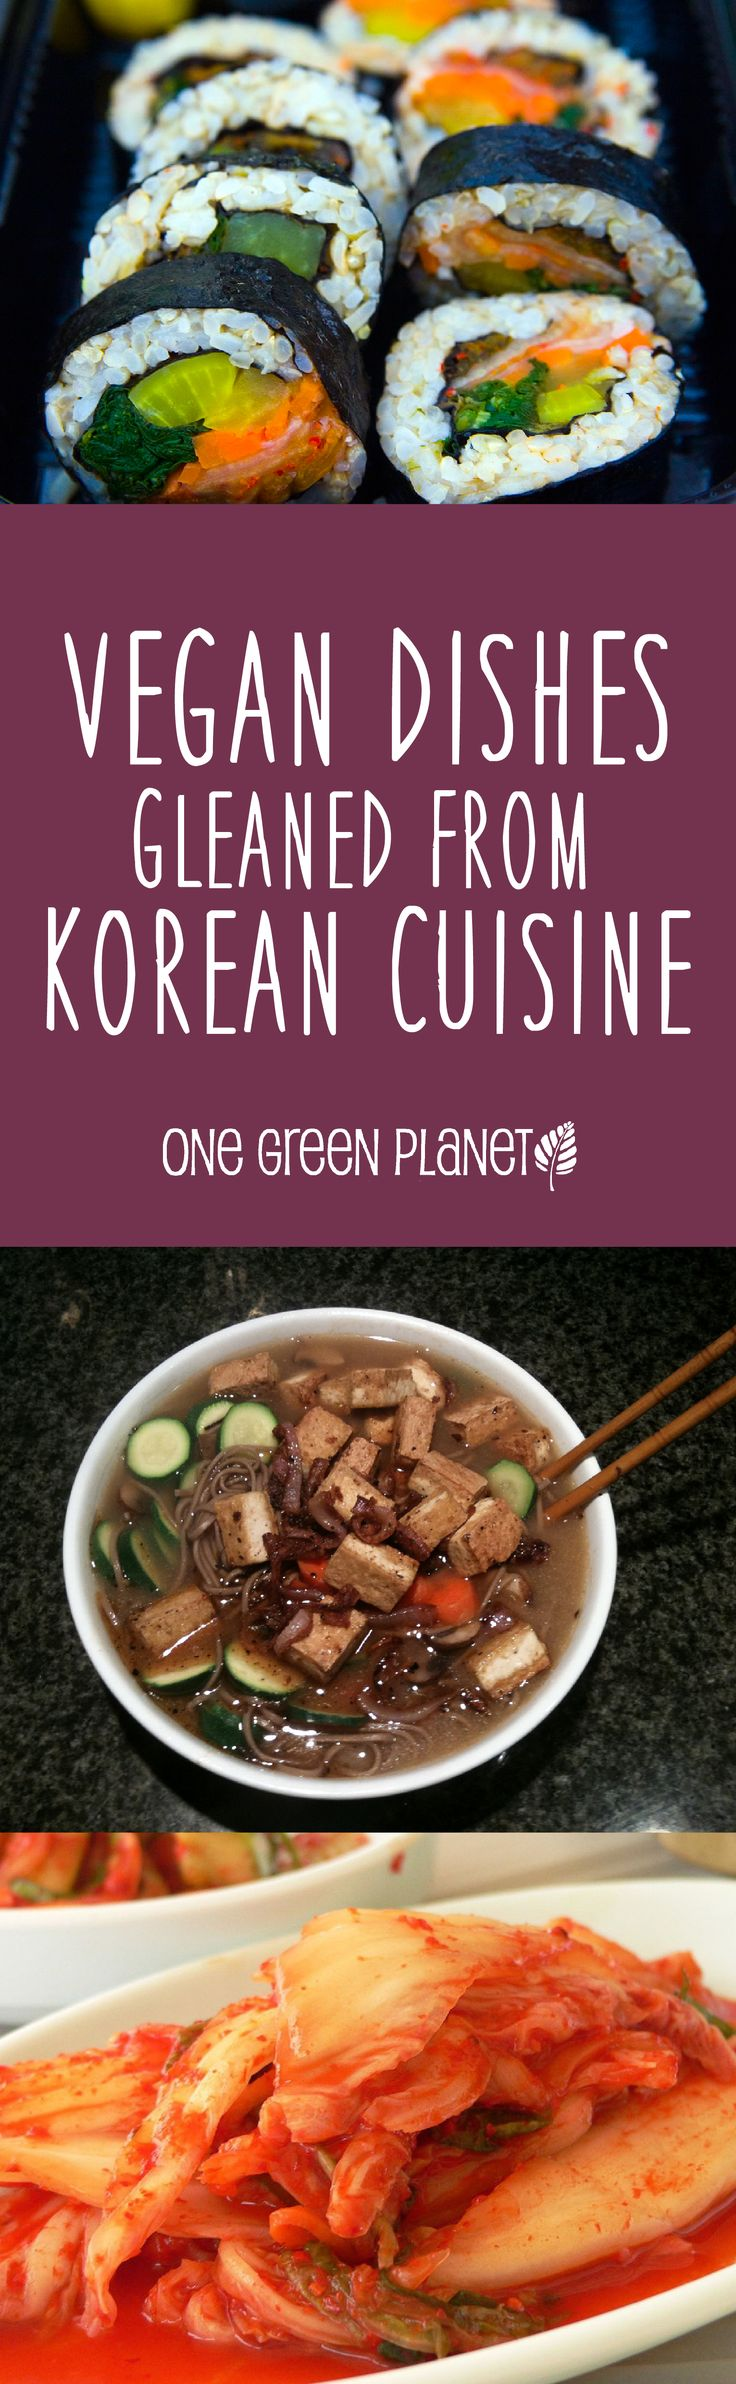 http://onegr.pl/1yrx0C7 #vegan #vegetarian #korean #recipes